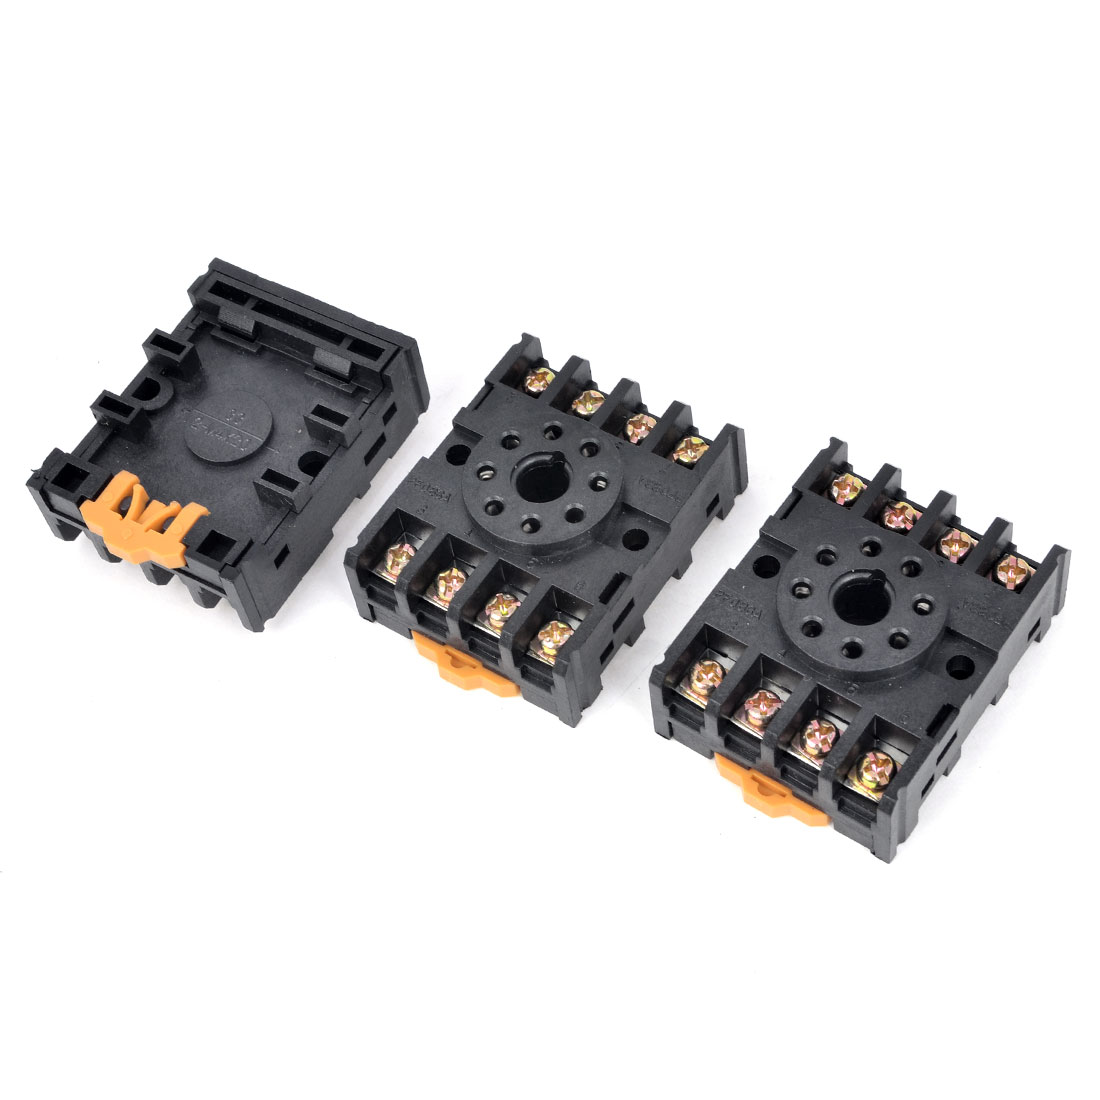 3PCS 300V 12A 35mm DIN Rail 8 Pin Screw Terminal PF-083A Socket Base for MK2P JTX-2C JQX-10F